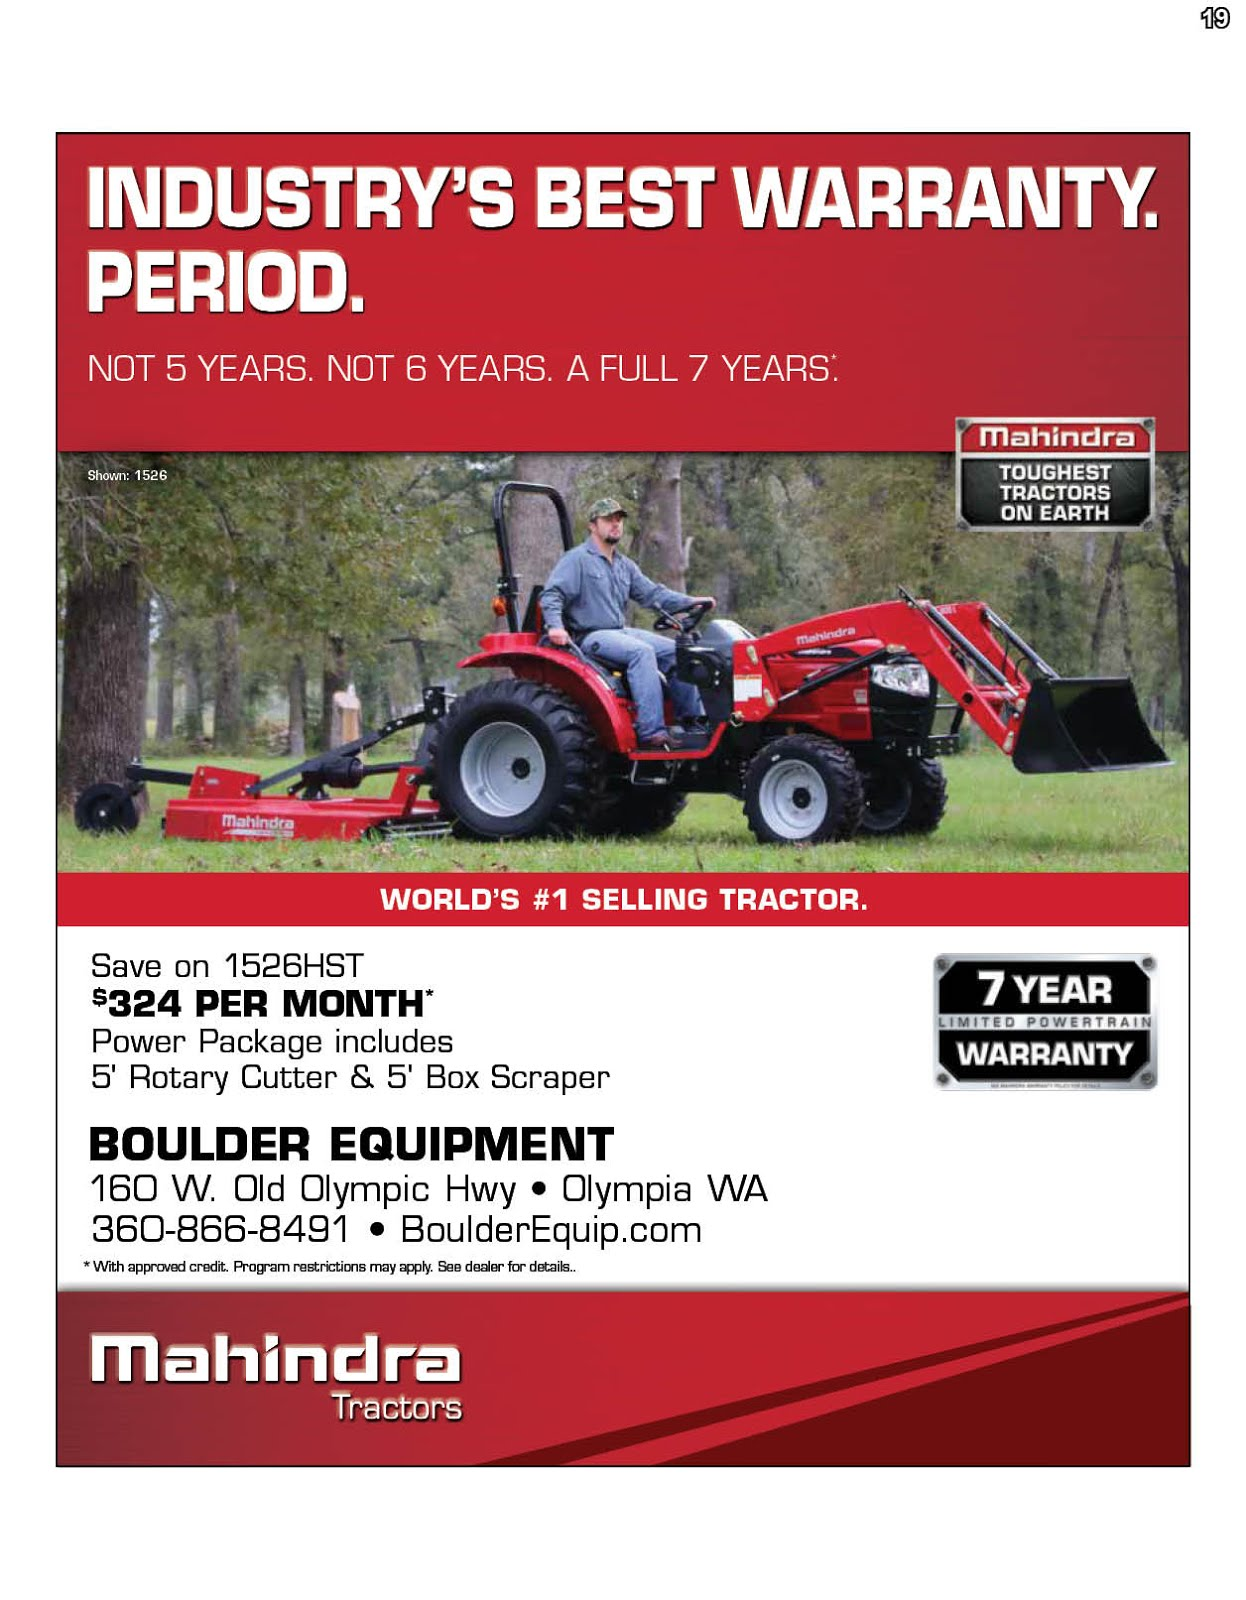 Mahindra Tractor Sale Going On Now @ Boulder Equipment!!